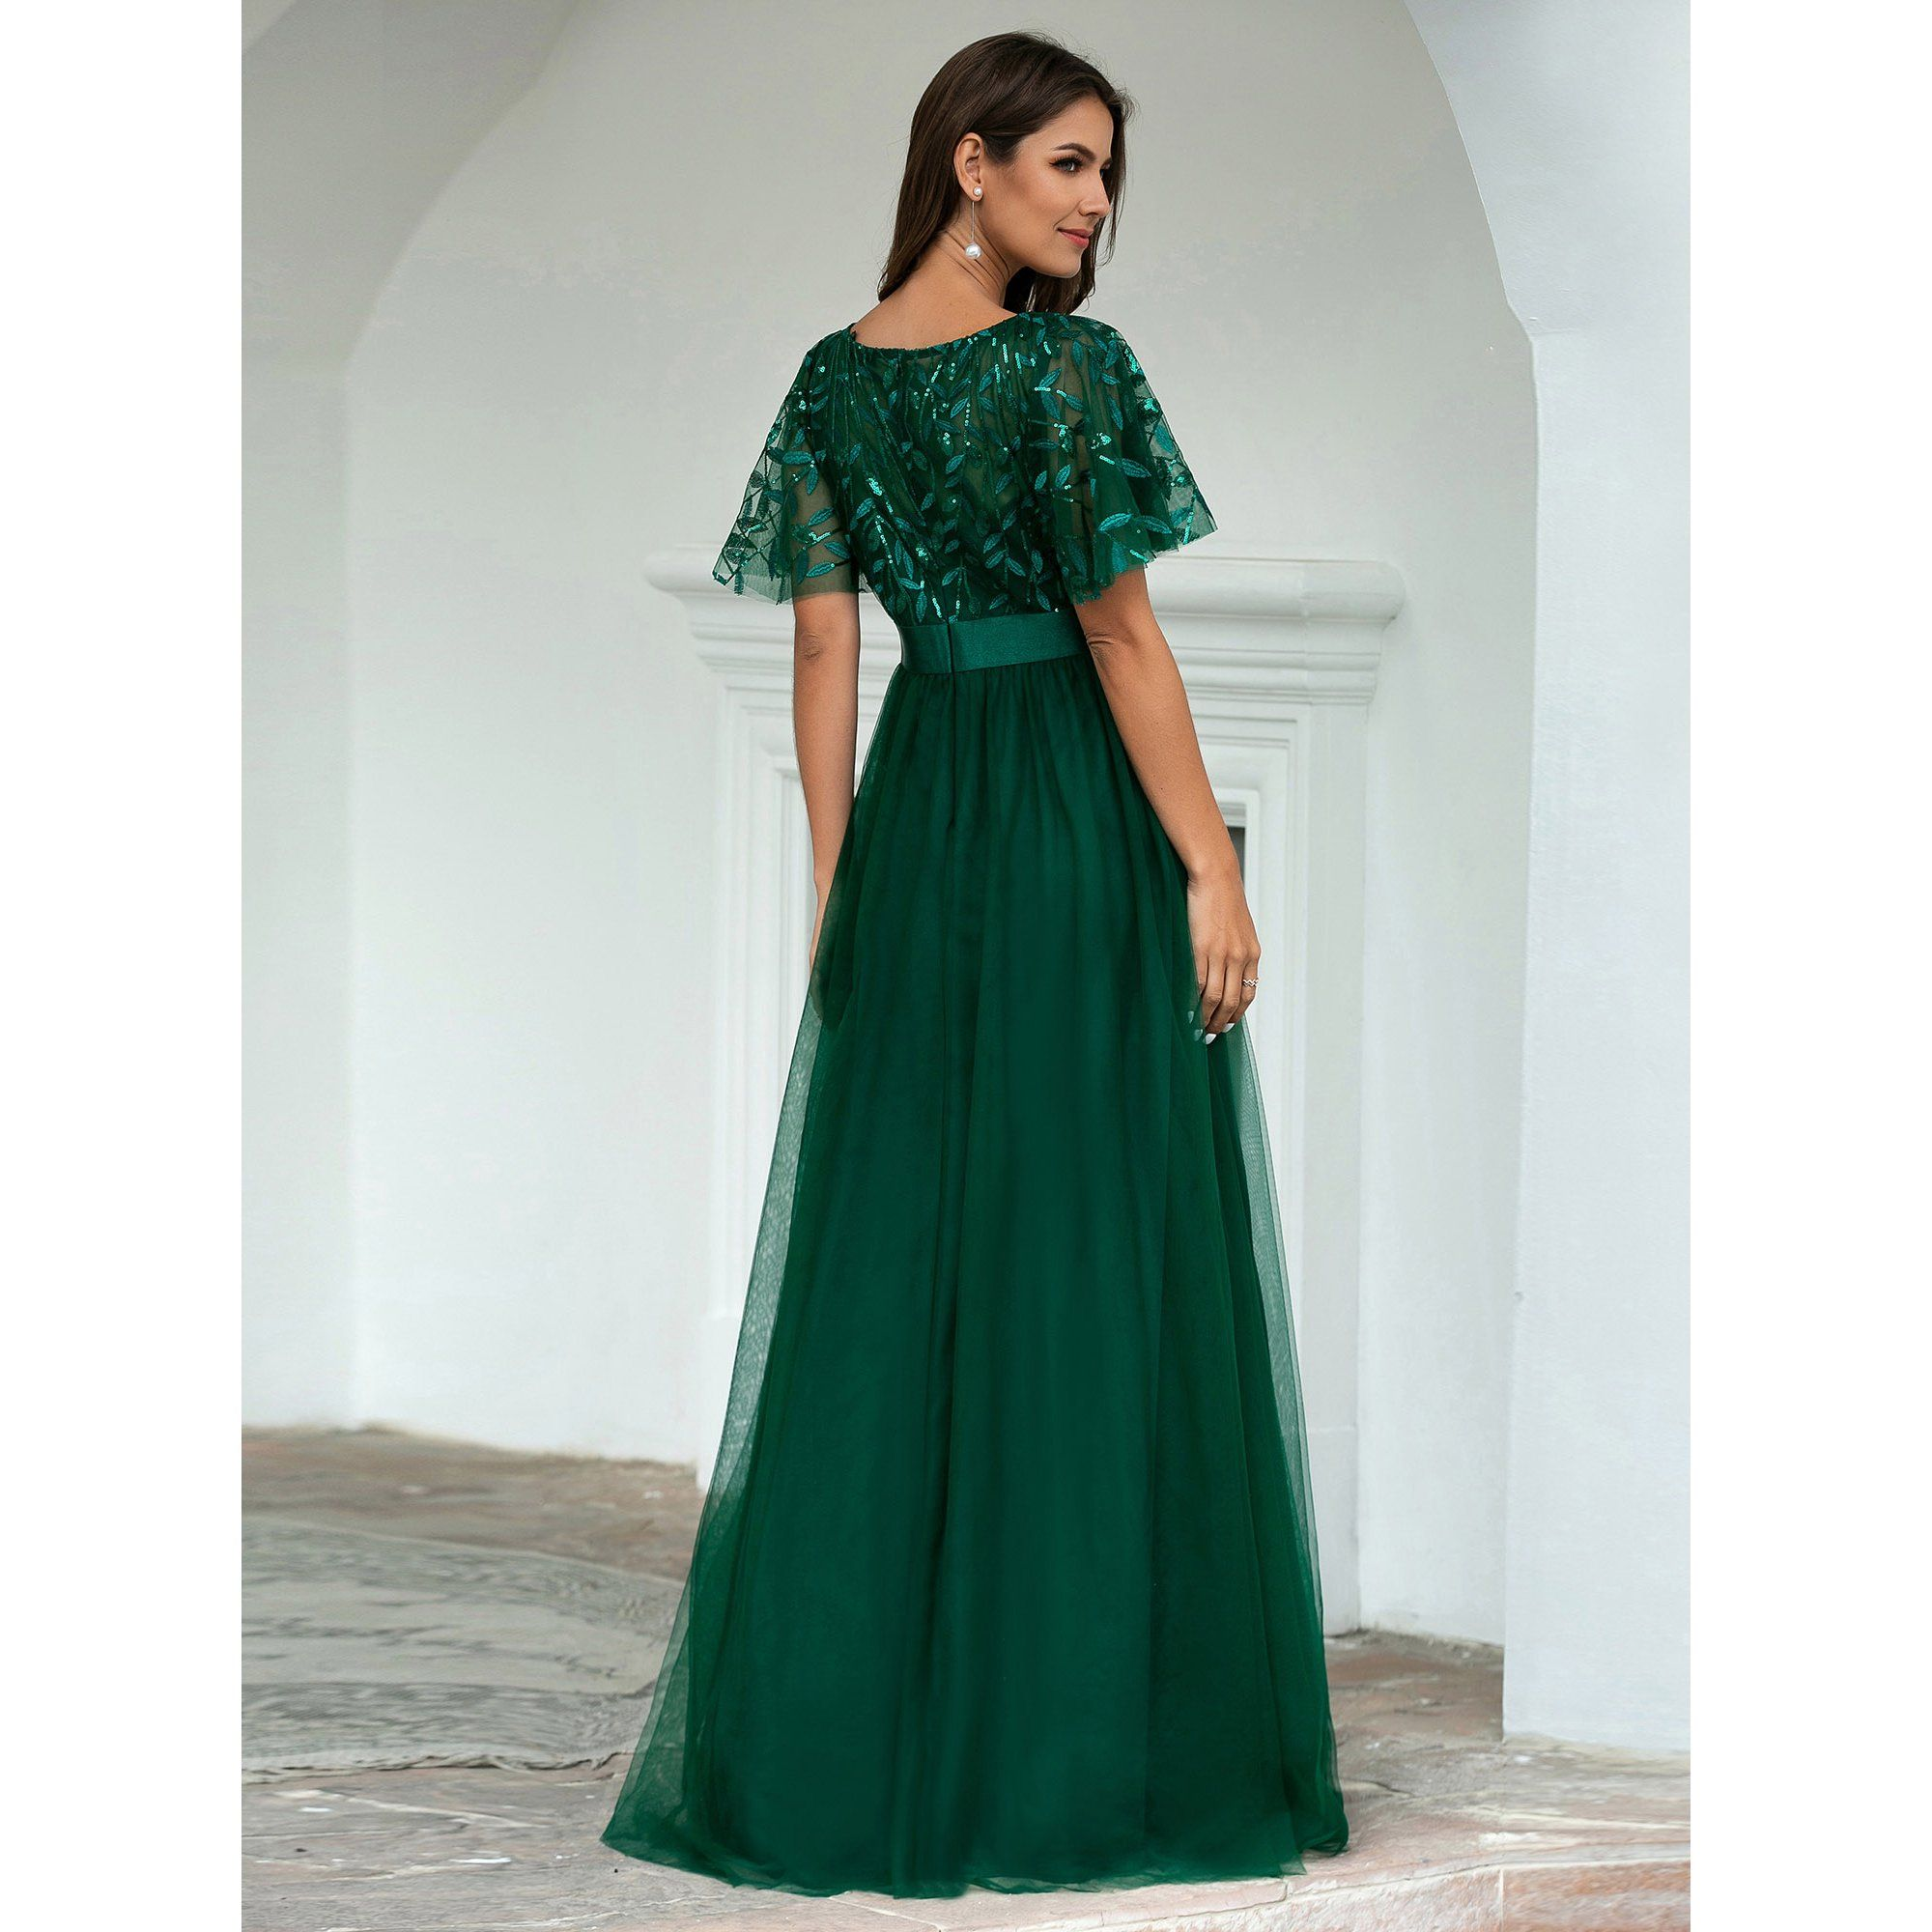 Ever Pretty Ever Pretty Womens Embroidered Long Maxi Wedding Party Bridesmaid Dresses For Women 00904 Green Us8 Walmart Com In 2021 Evening Dresses Bridesmaid Dresses Plus Size Evening Dress Floor Length [ 2000 x 2000 Pixel ]